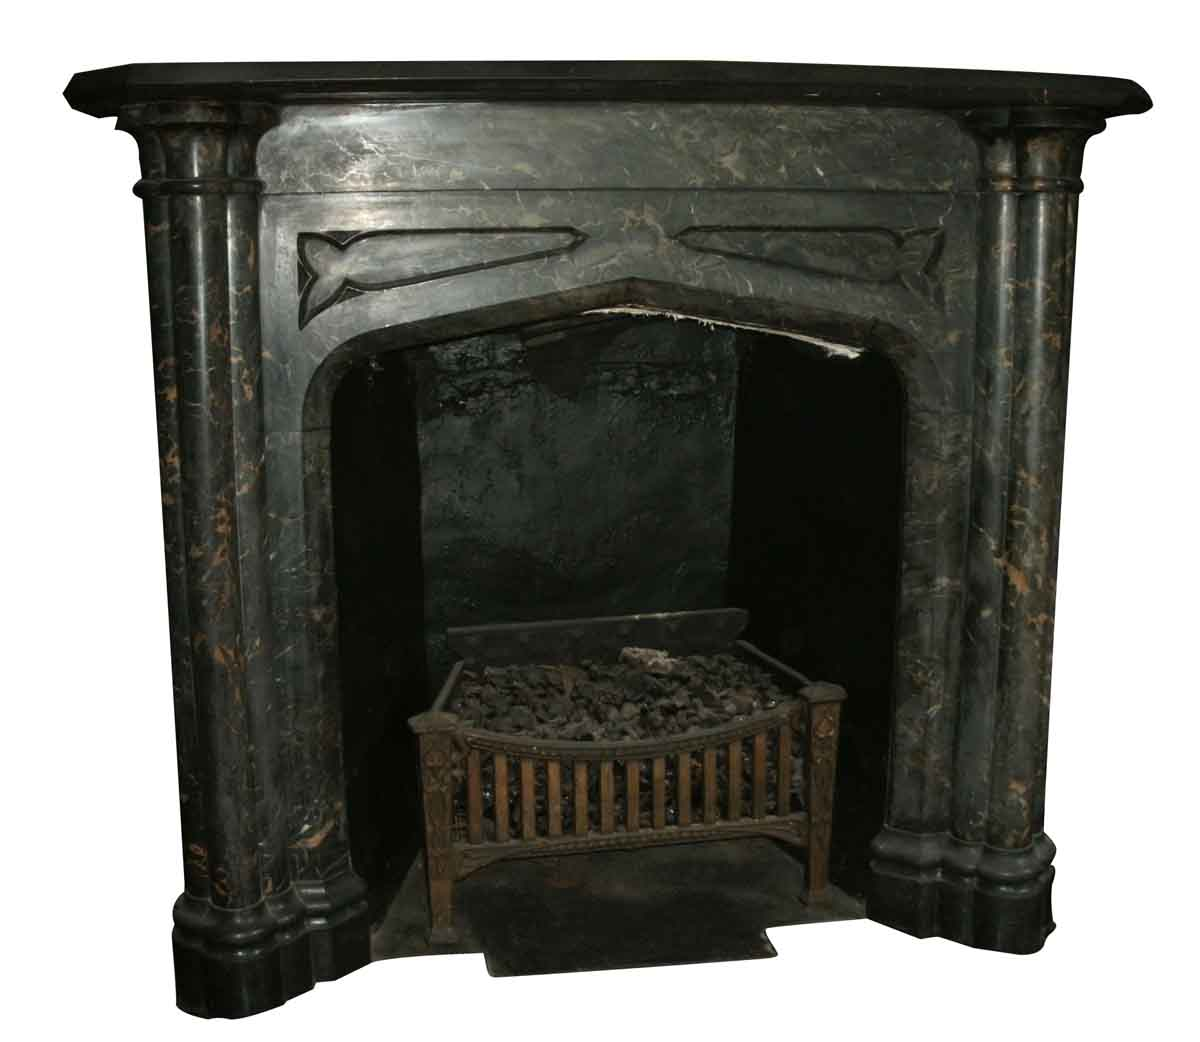 Black & Gold Gothic Revival Mantel